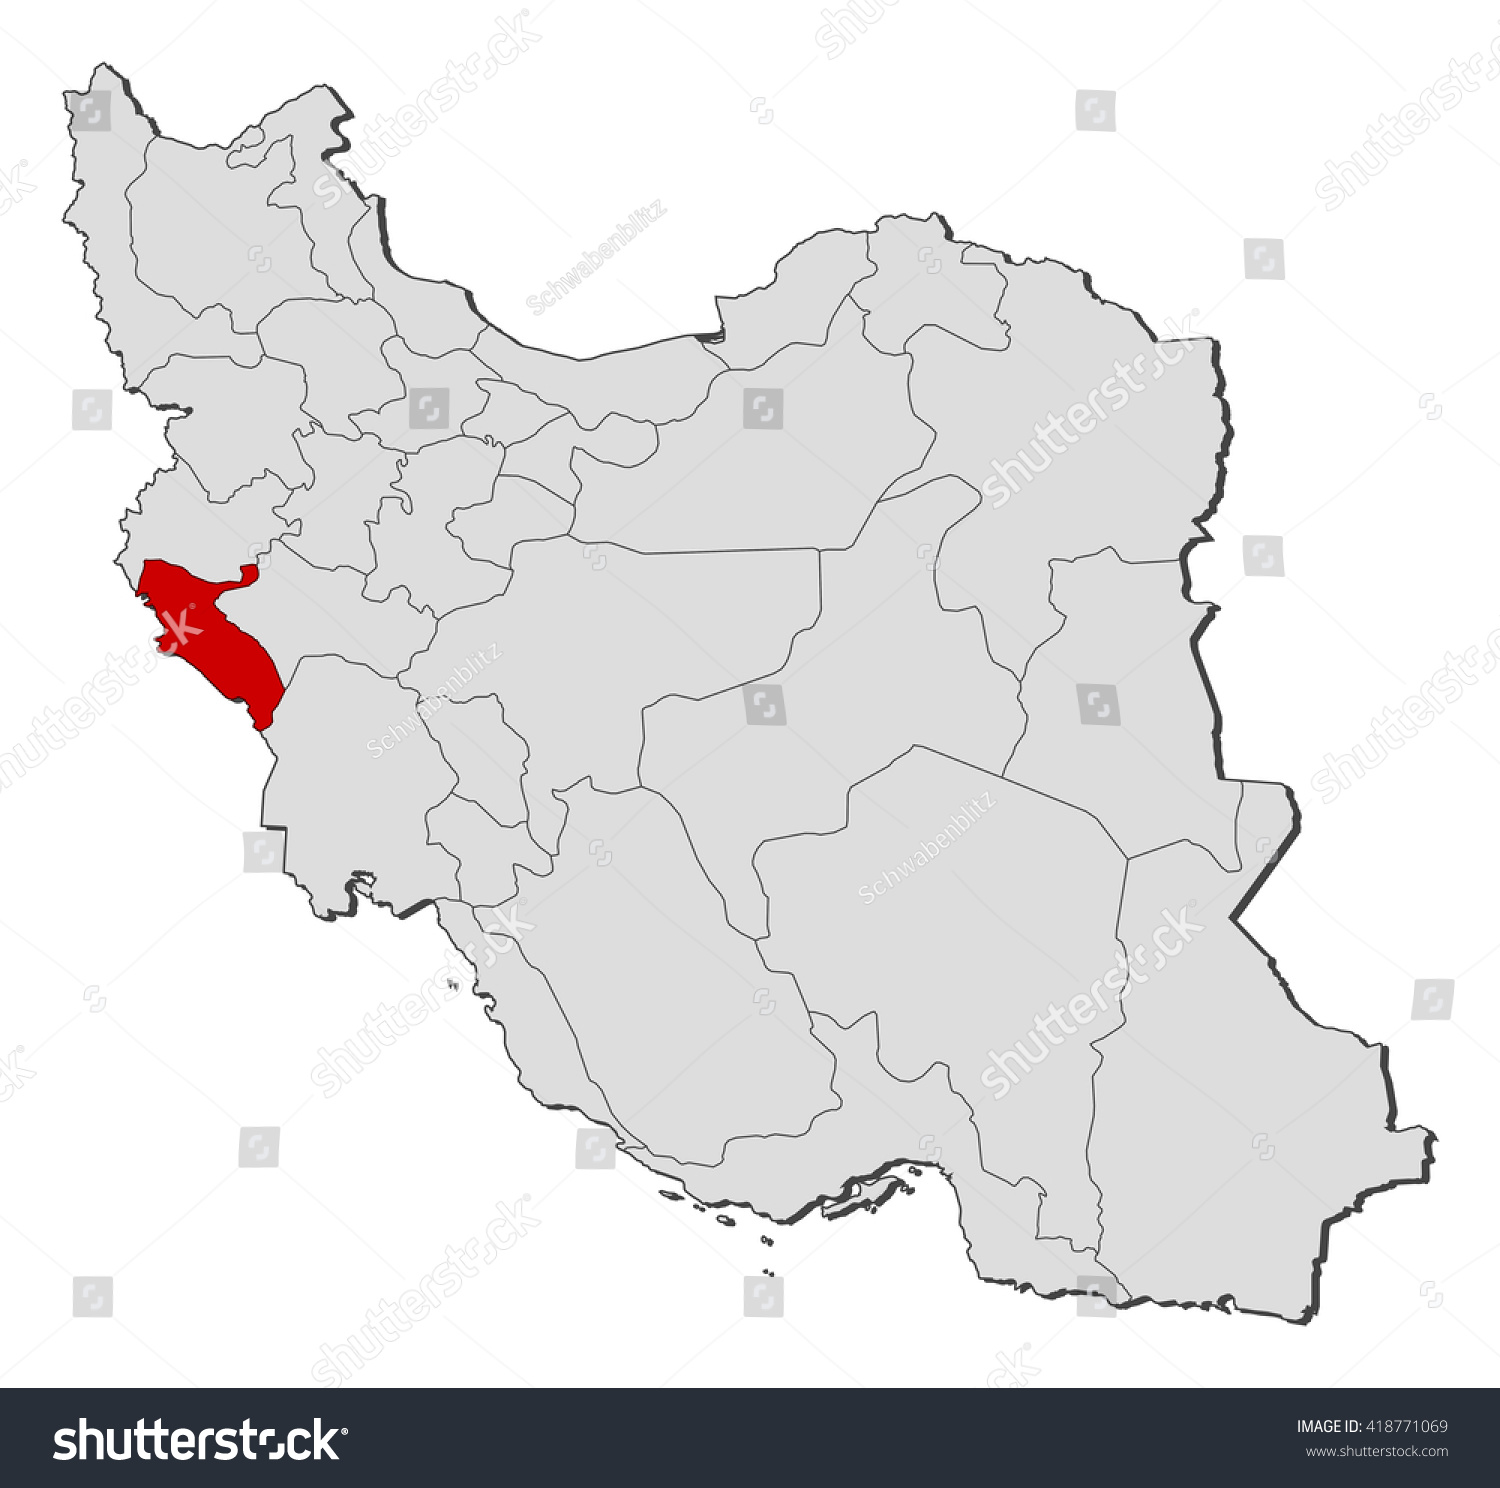 Map Iran Ilam Stock Vector Shutterstock - Ilam map